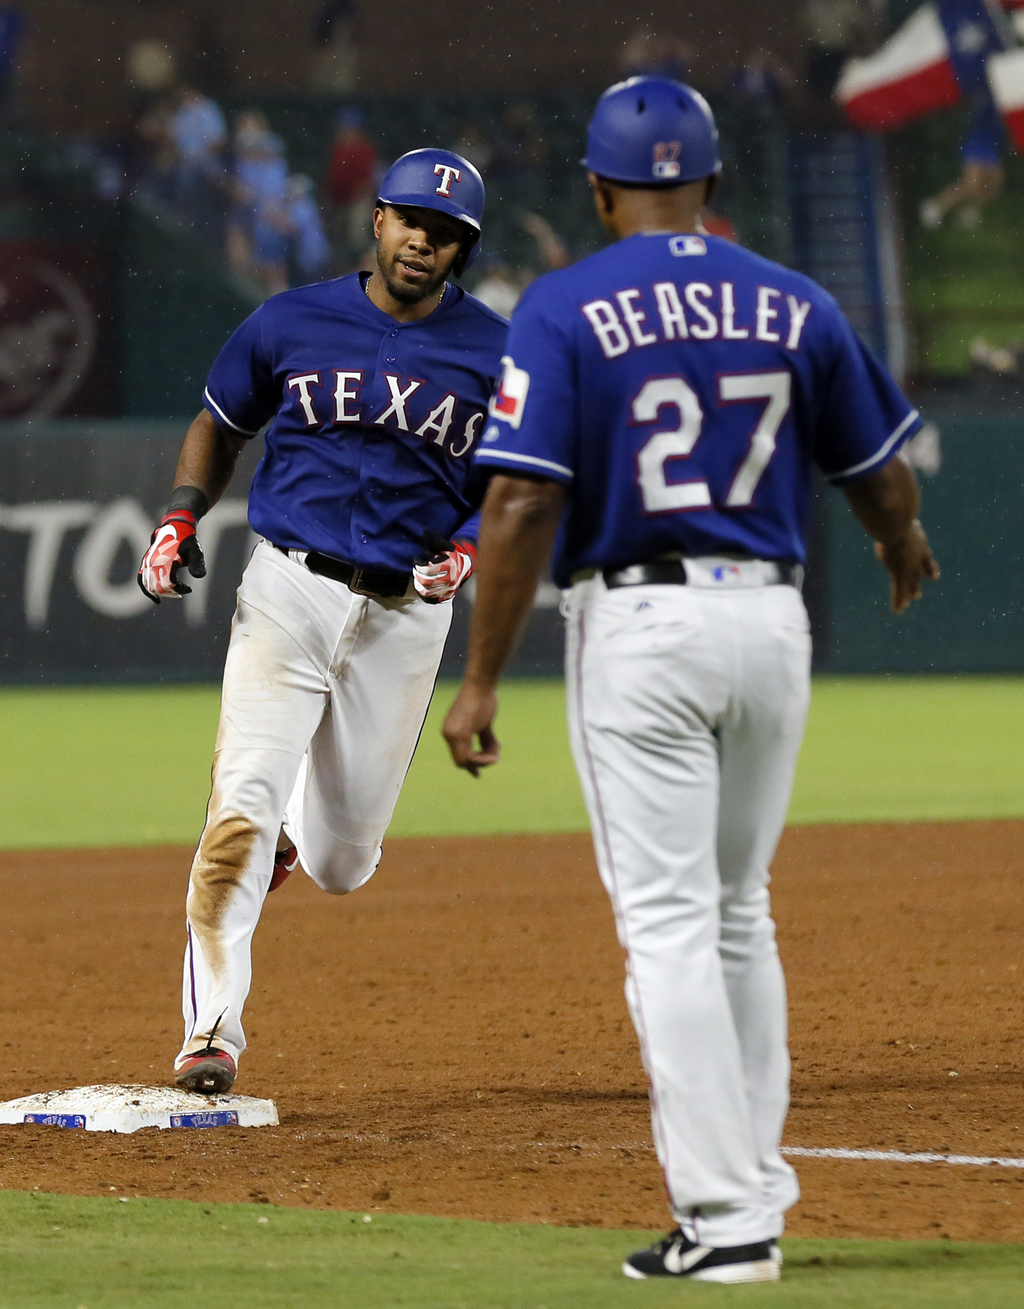 Texas Rangers' Elvis Andrus, left, rounds third past third base coach Tony Beasley (27) after hitting a two-run home run during the sixth inning of a ...